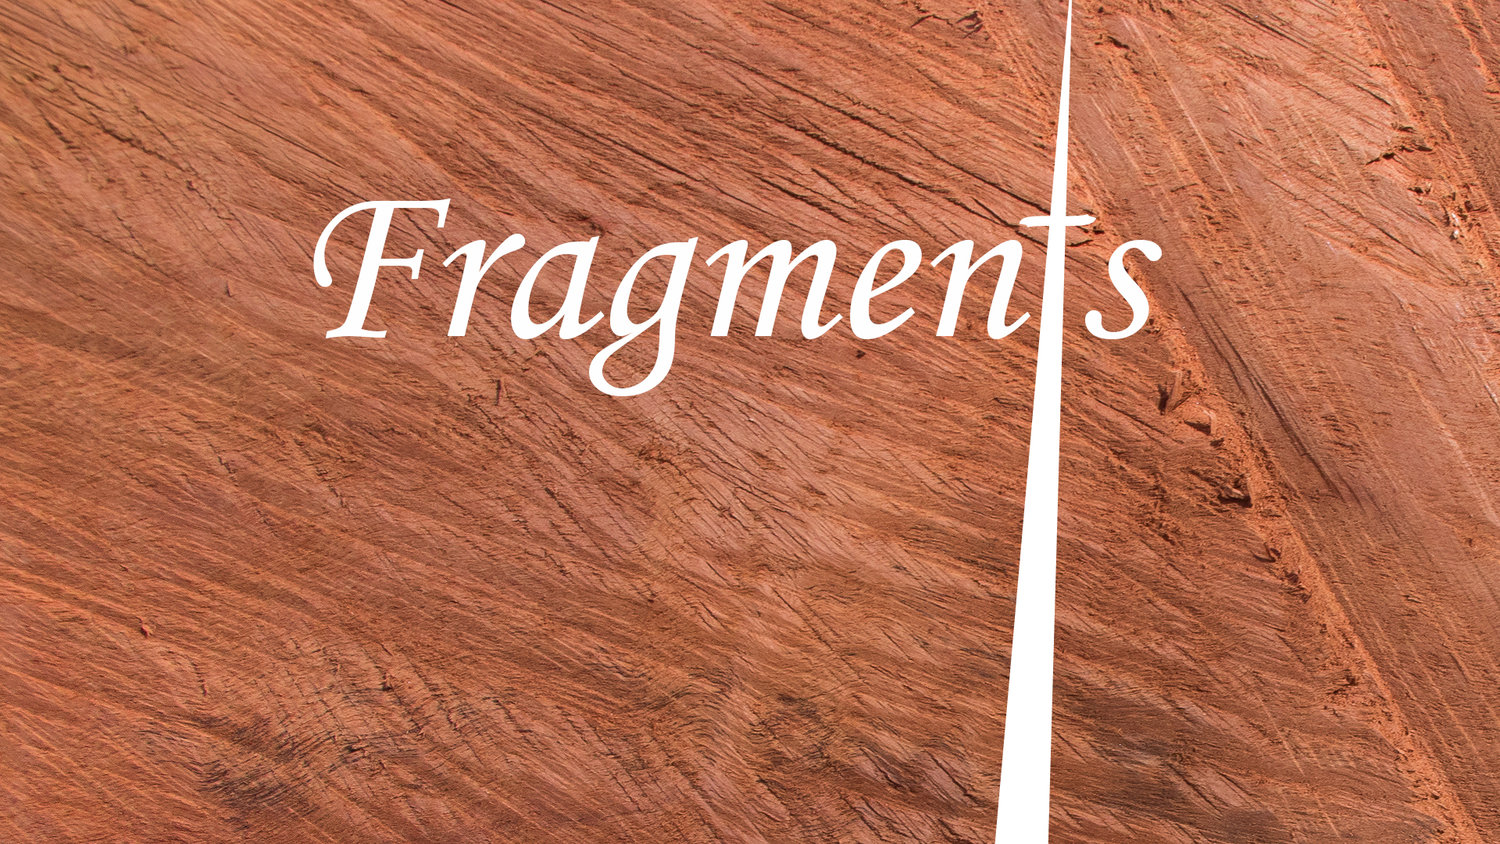 Fragments+Website+image.jpg